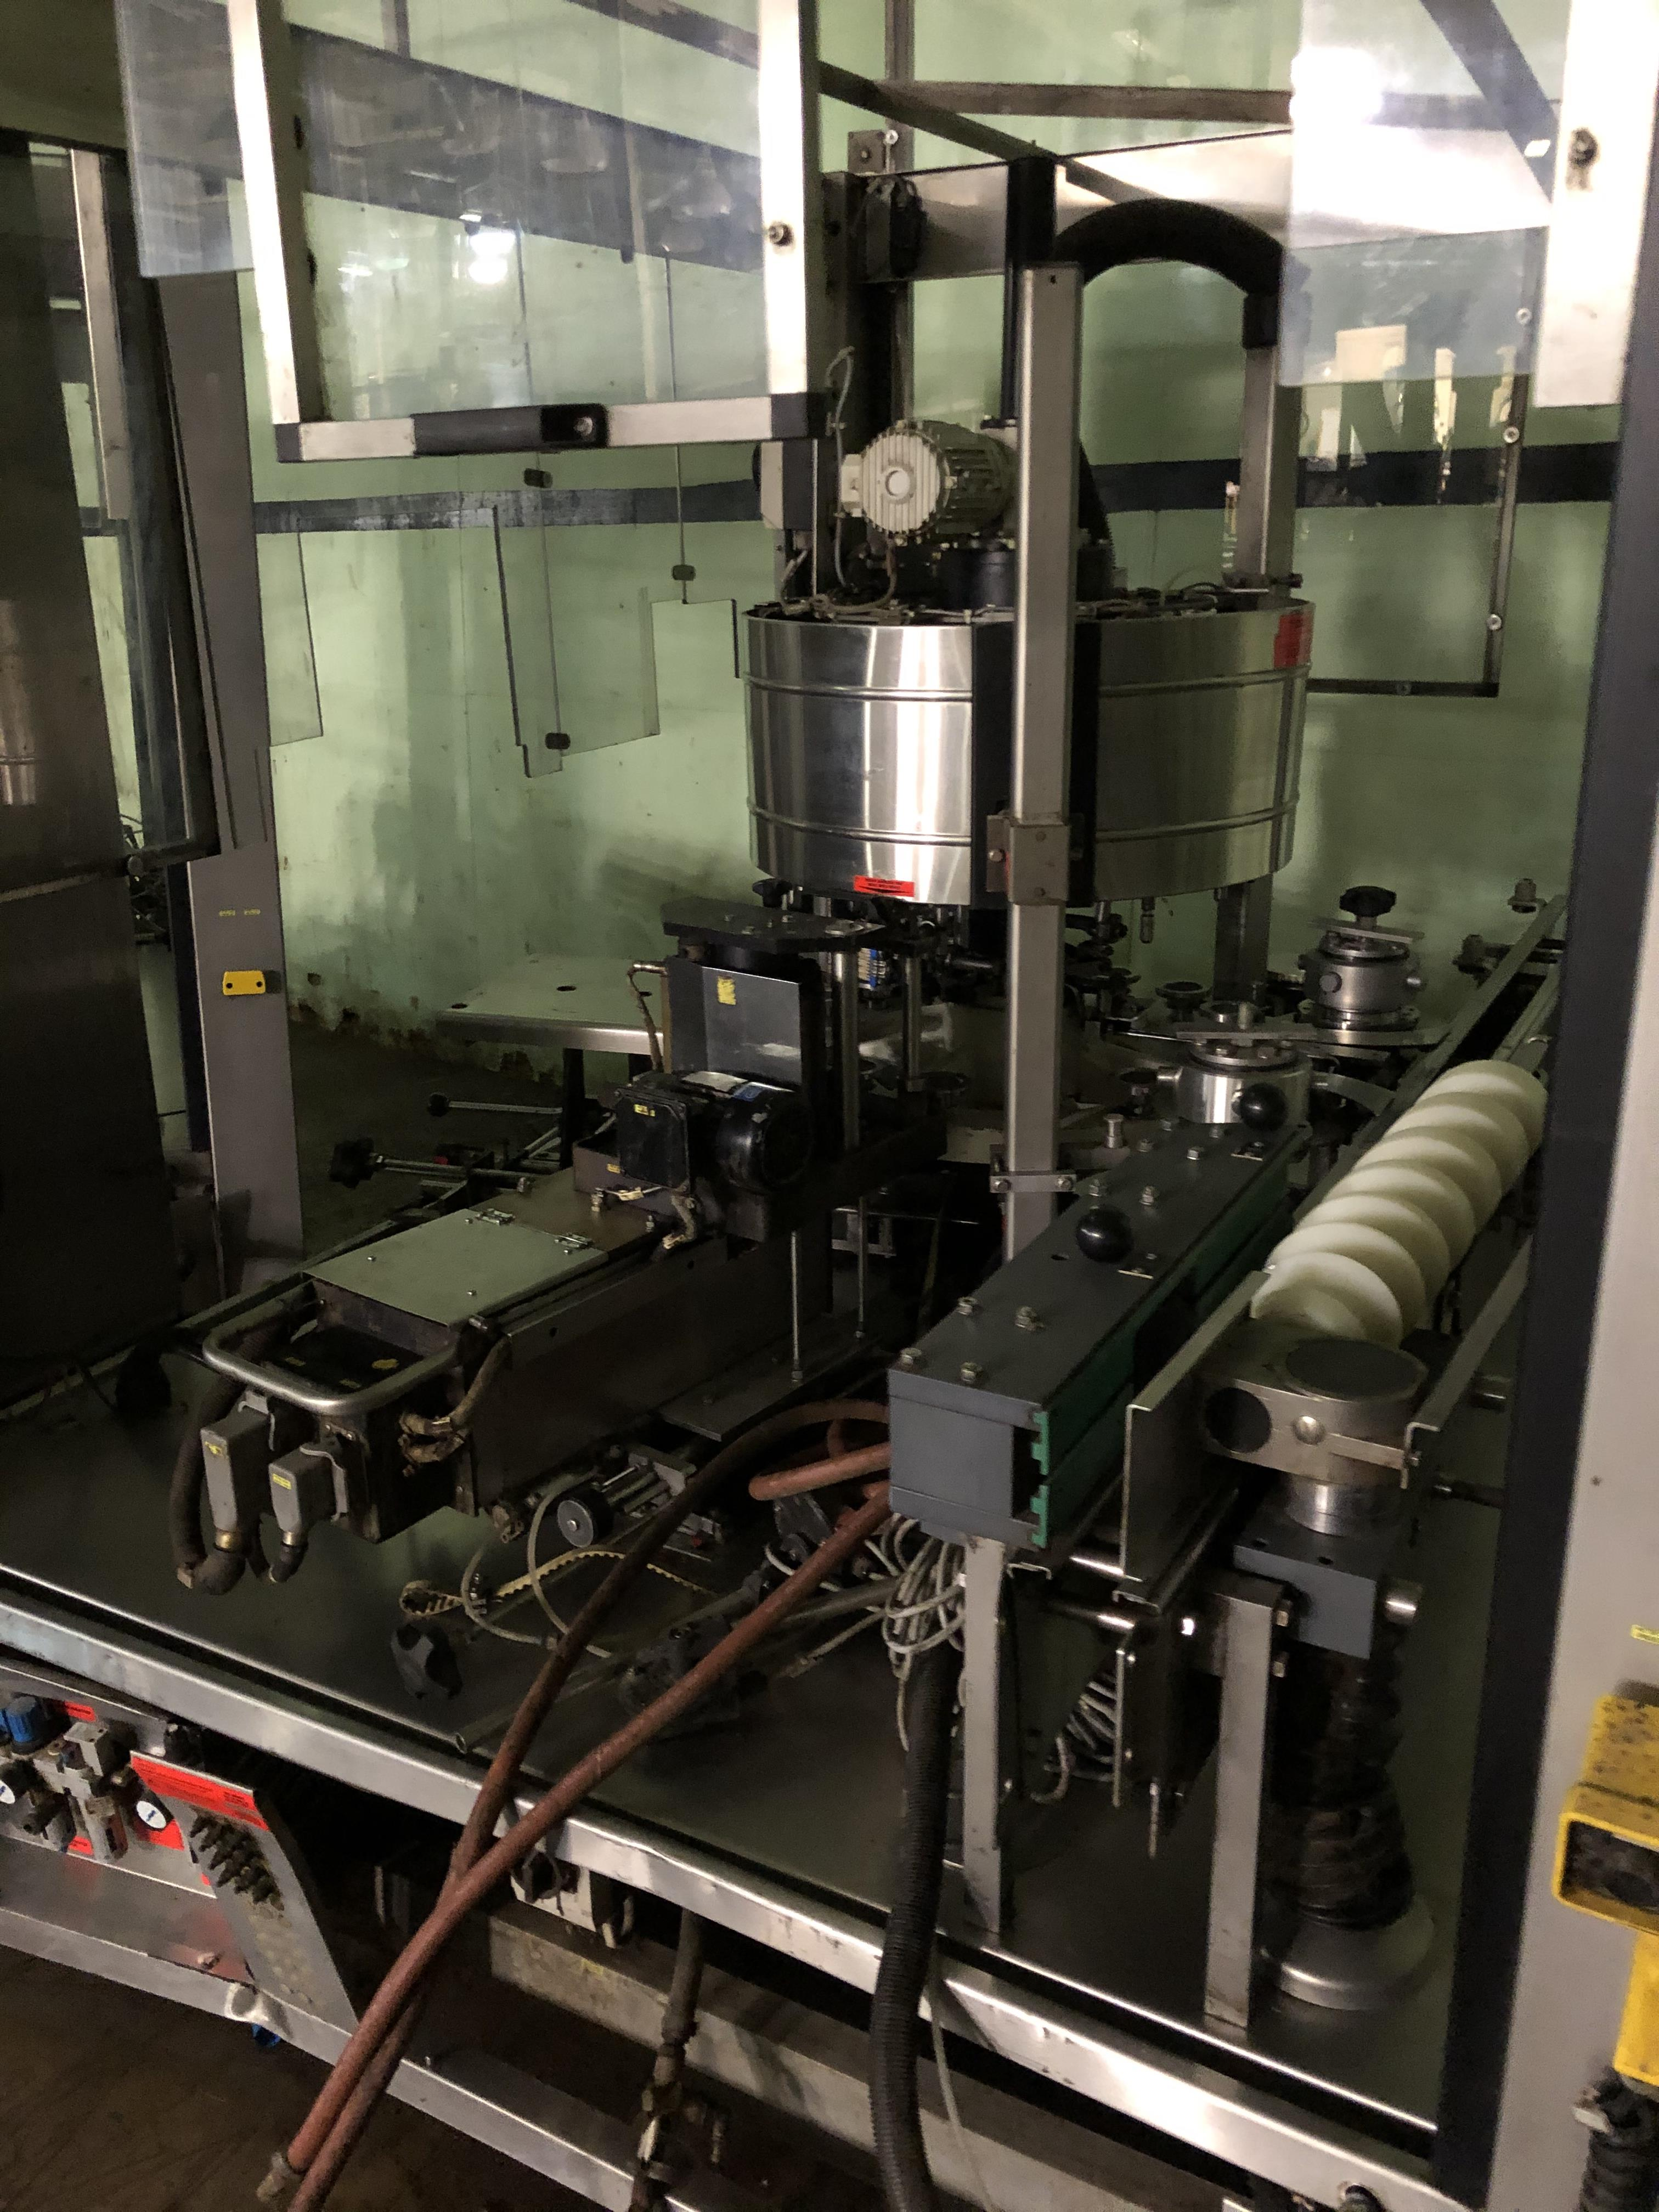 Krones Canmatic Labeler, Machine #073-Q84, RIGGING FEE - $1750 - Image 2 of 4